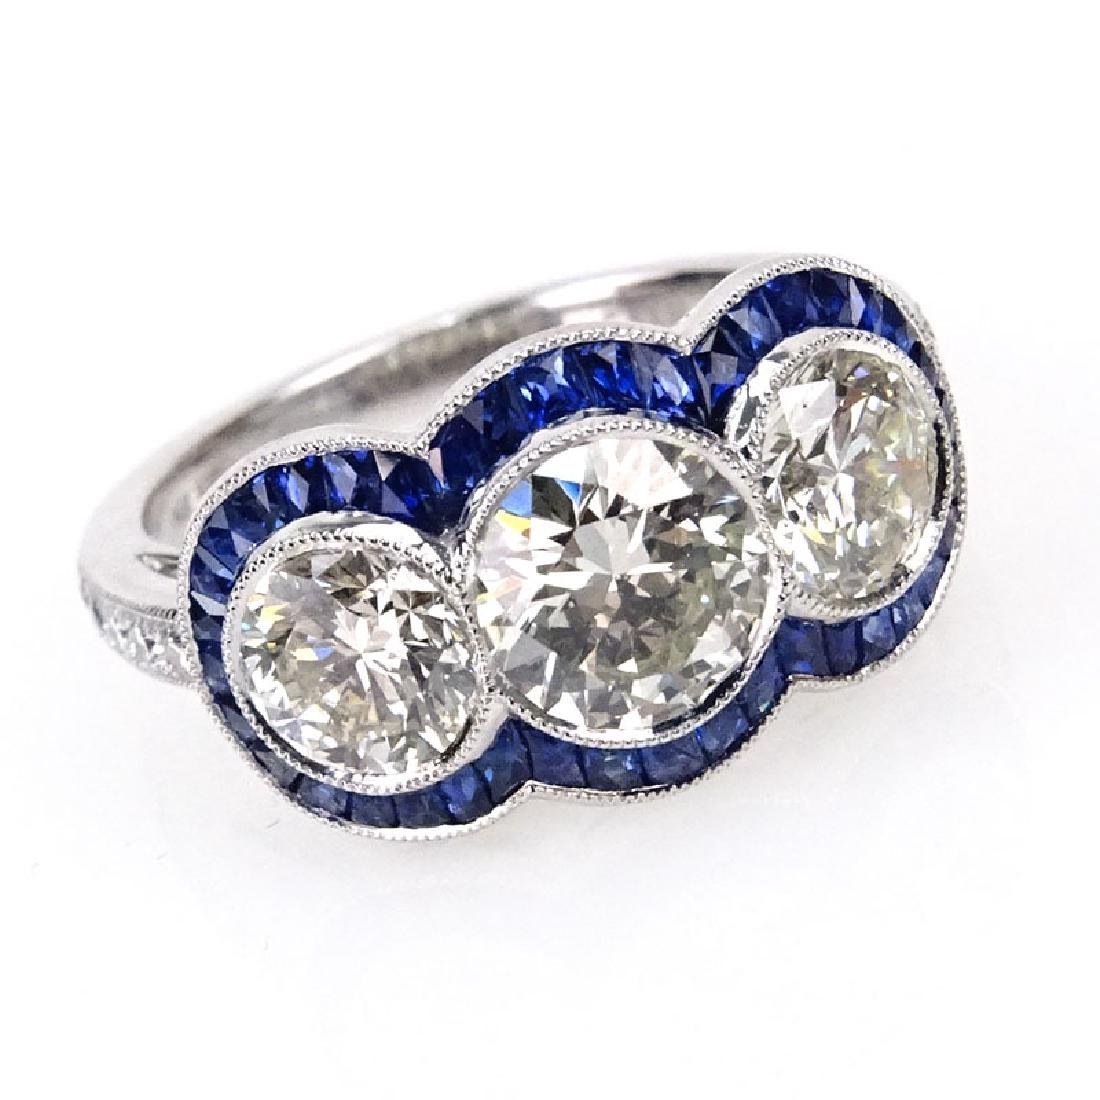 Art Deco style Approx. 2.67 Carat Round Brilliant Cut